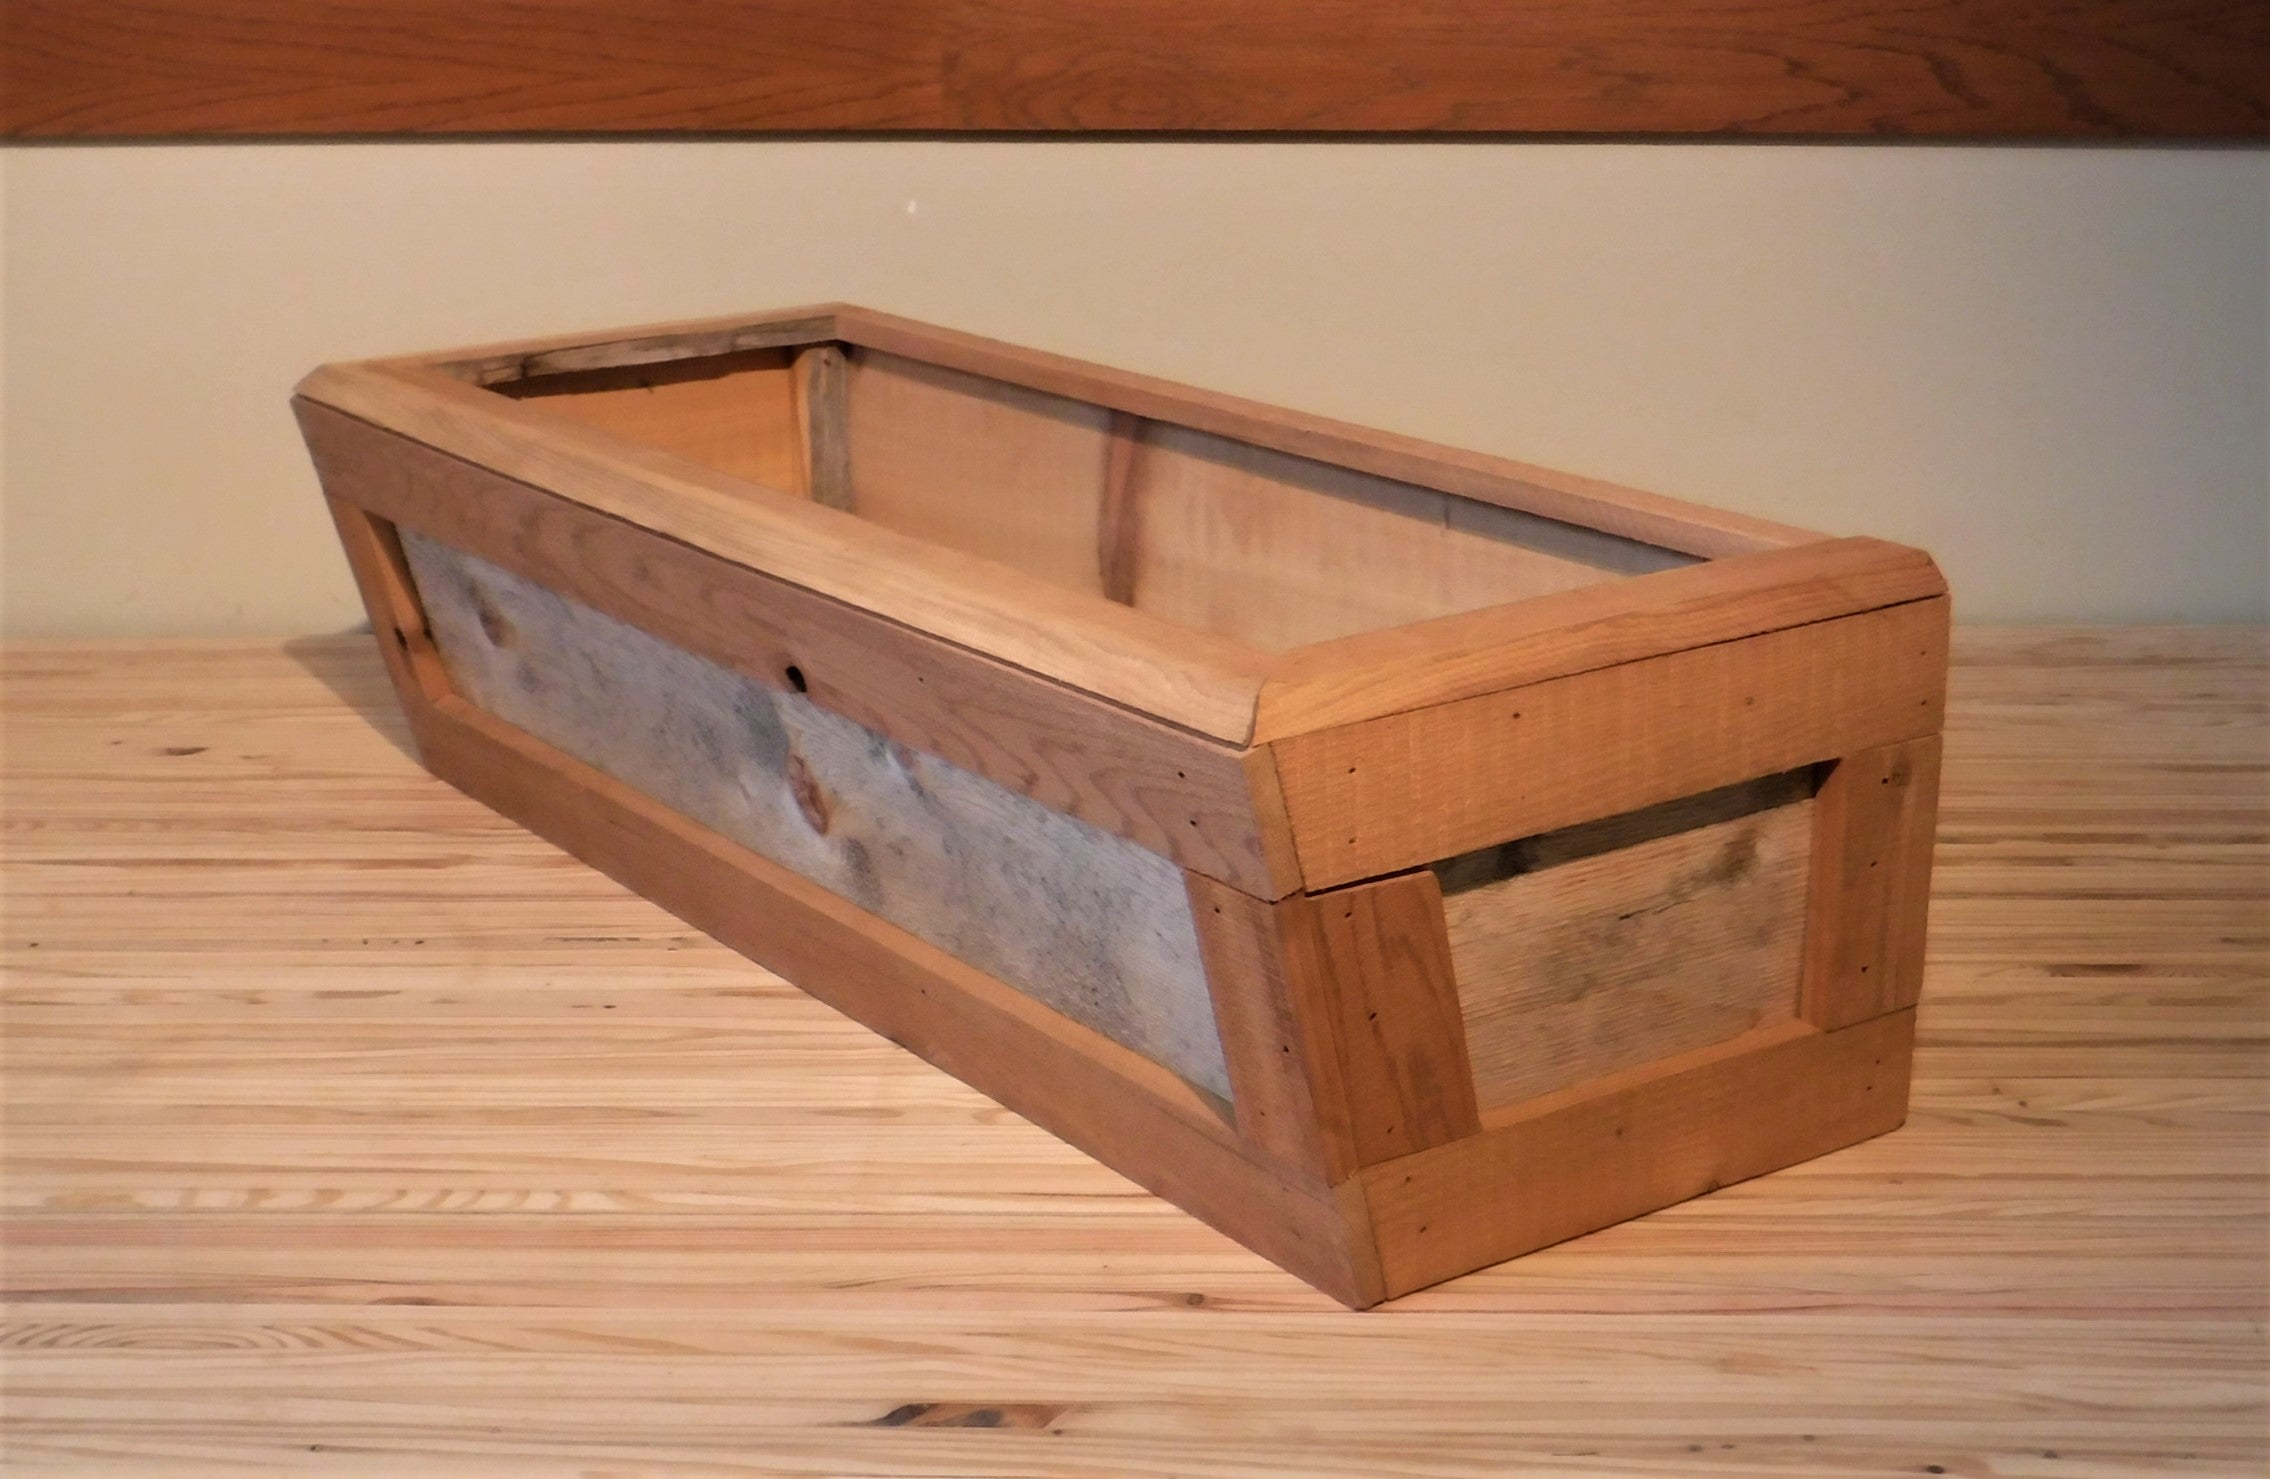 #2 Planter (window) box